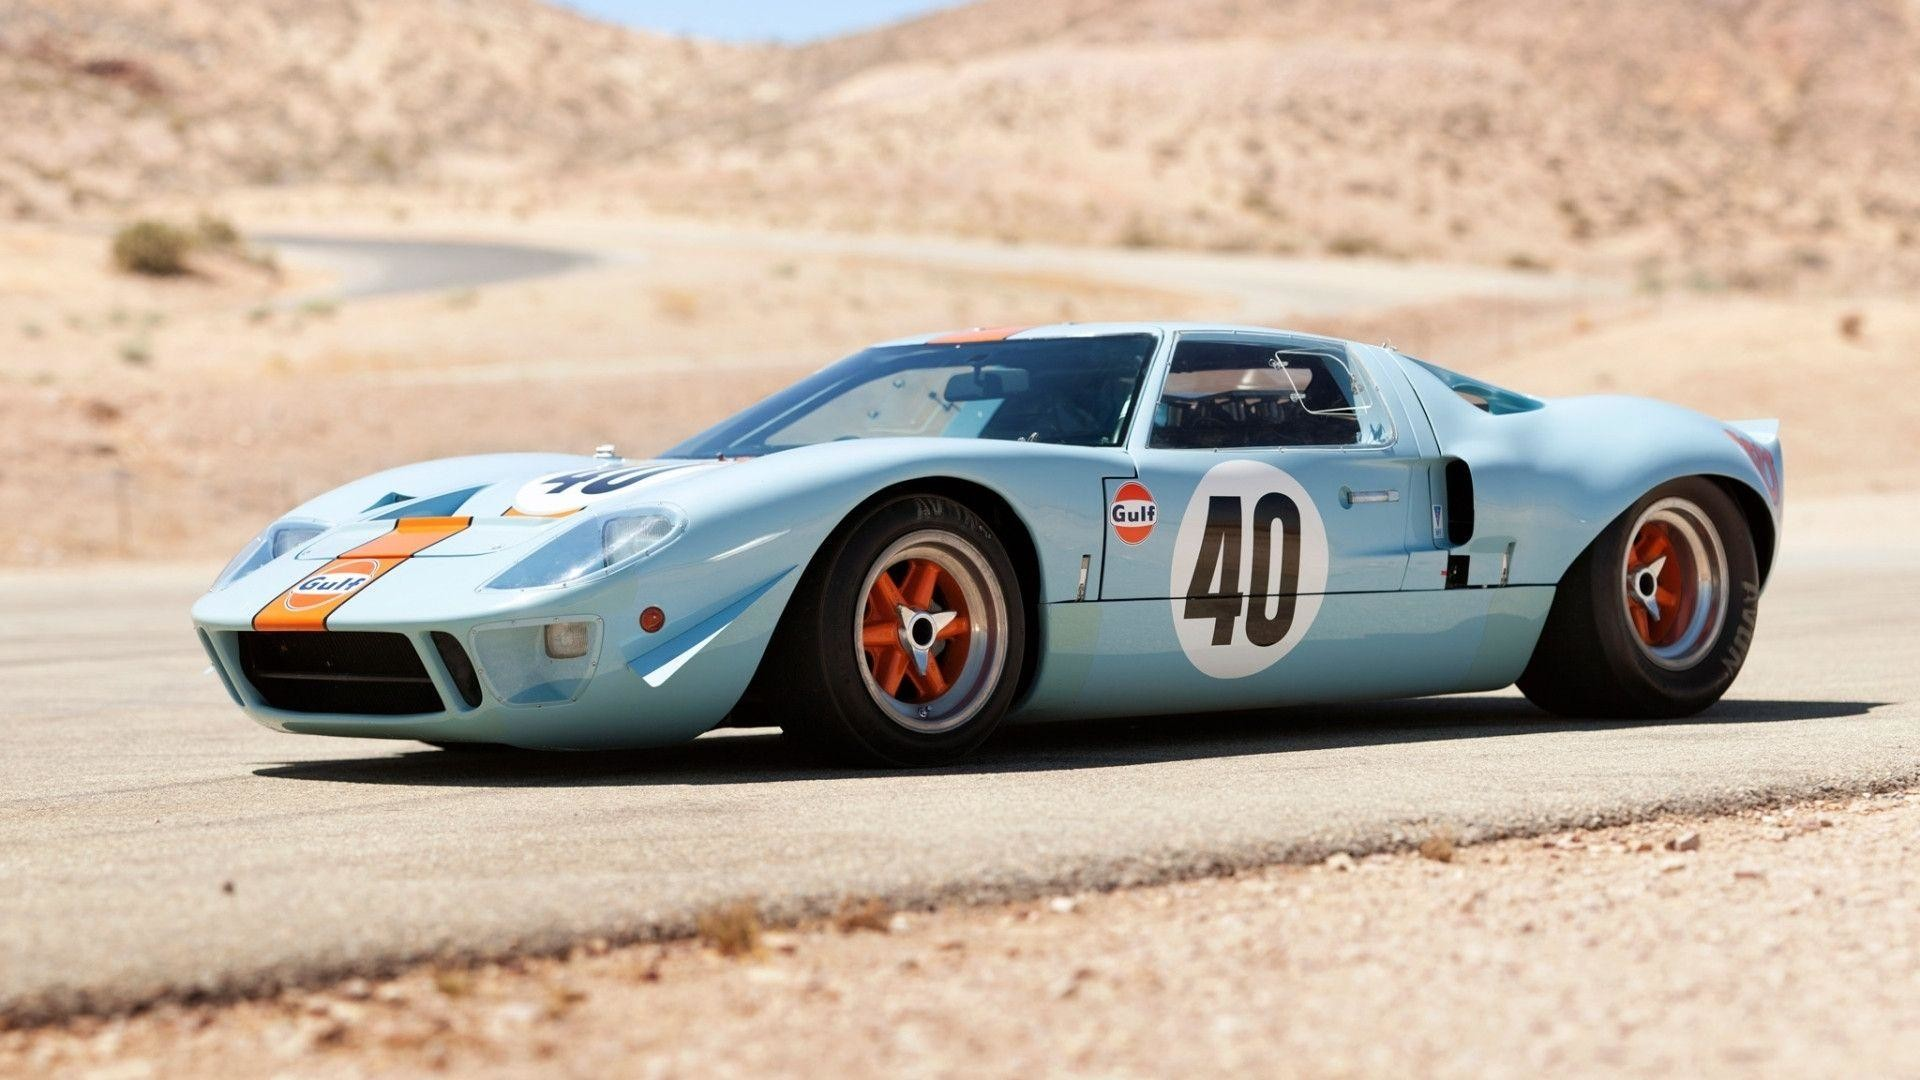 Ford Gt40 Wallpaper 75 Images